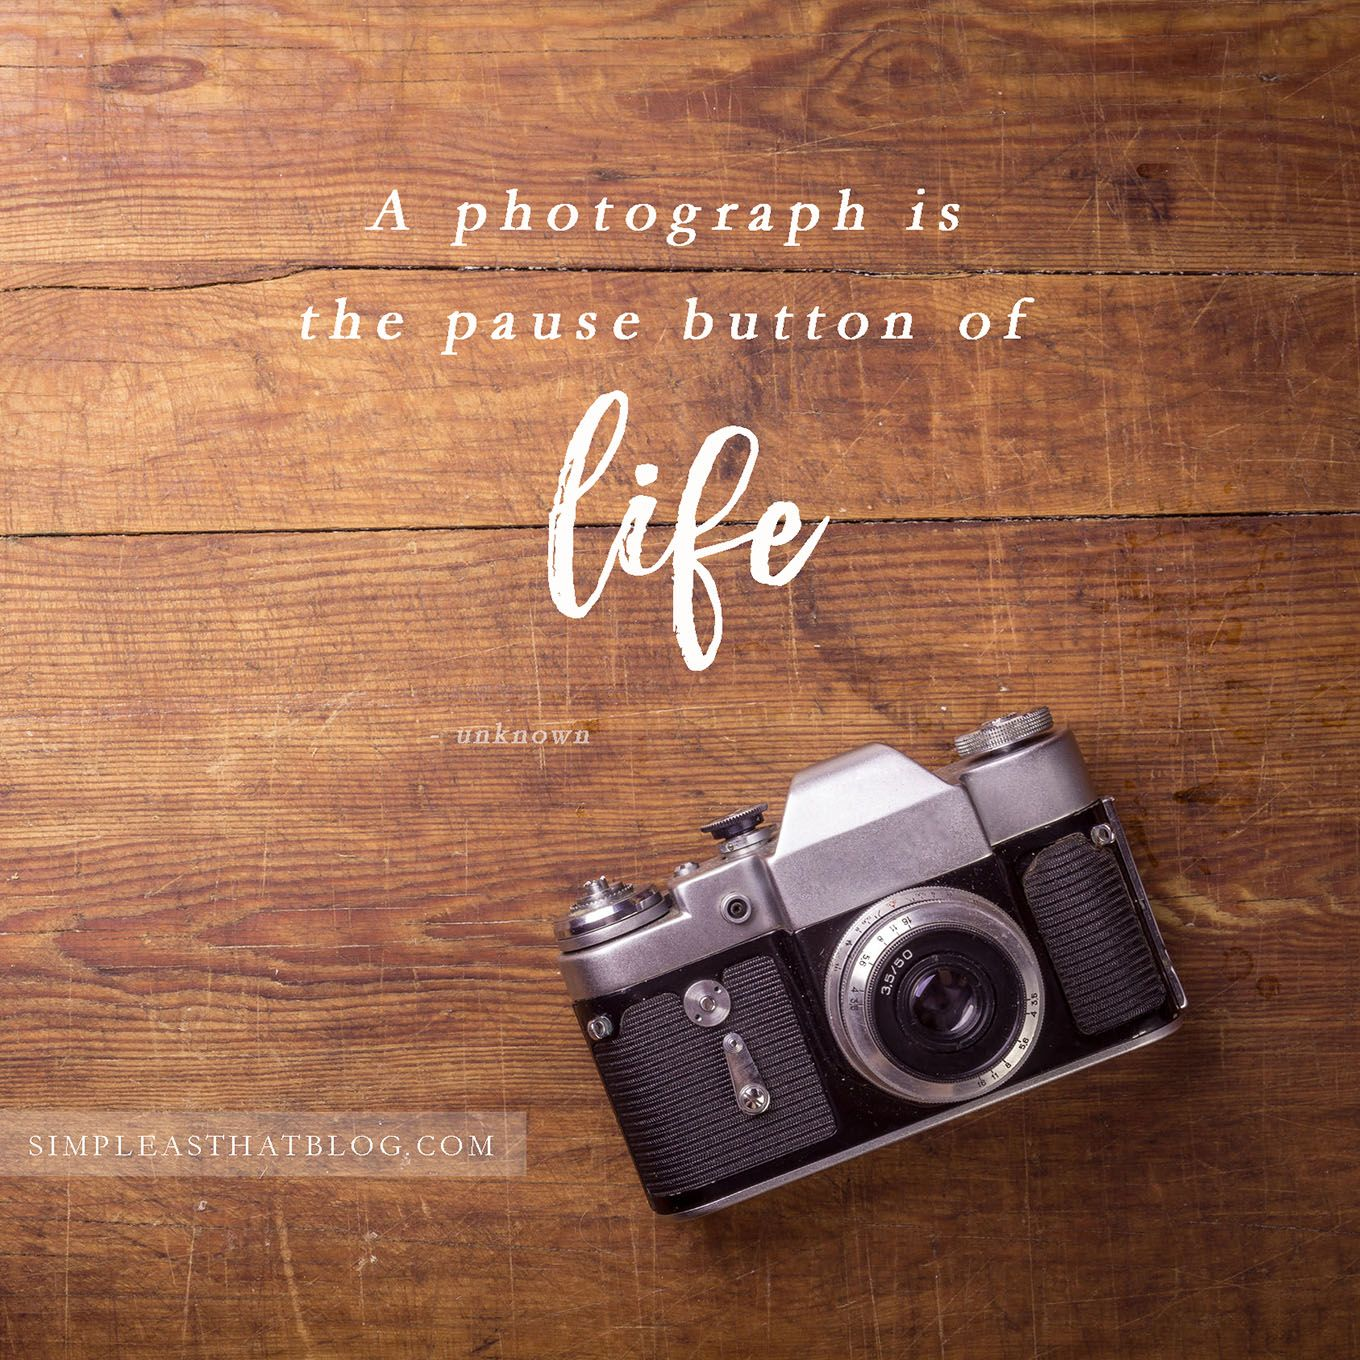 Quotes Life Journey 12 Quotes Inspire Photography Journey  Photography Photography